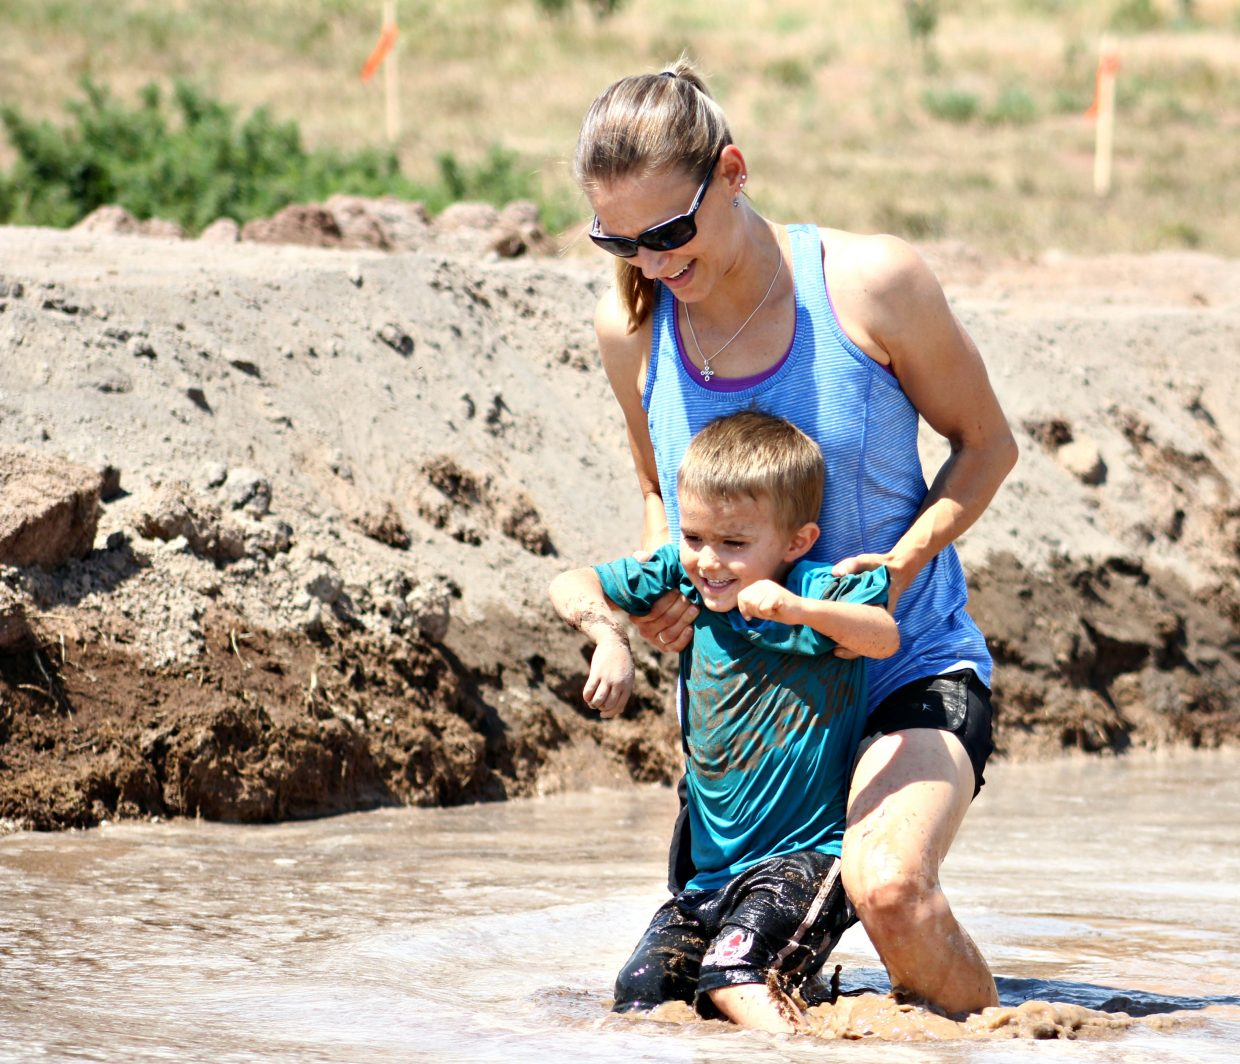 Lindsay Littlepage carries her son, 4-year-old Jacob, through a deep trench of mud. Mudzilla was presented by Scott Green Excavating, 7 Hermits Brewing Co., the town of Gypsum and Western Eagle County Metropolitan Recreation District.